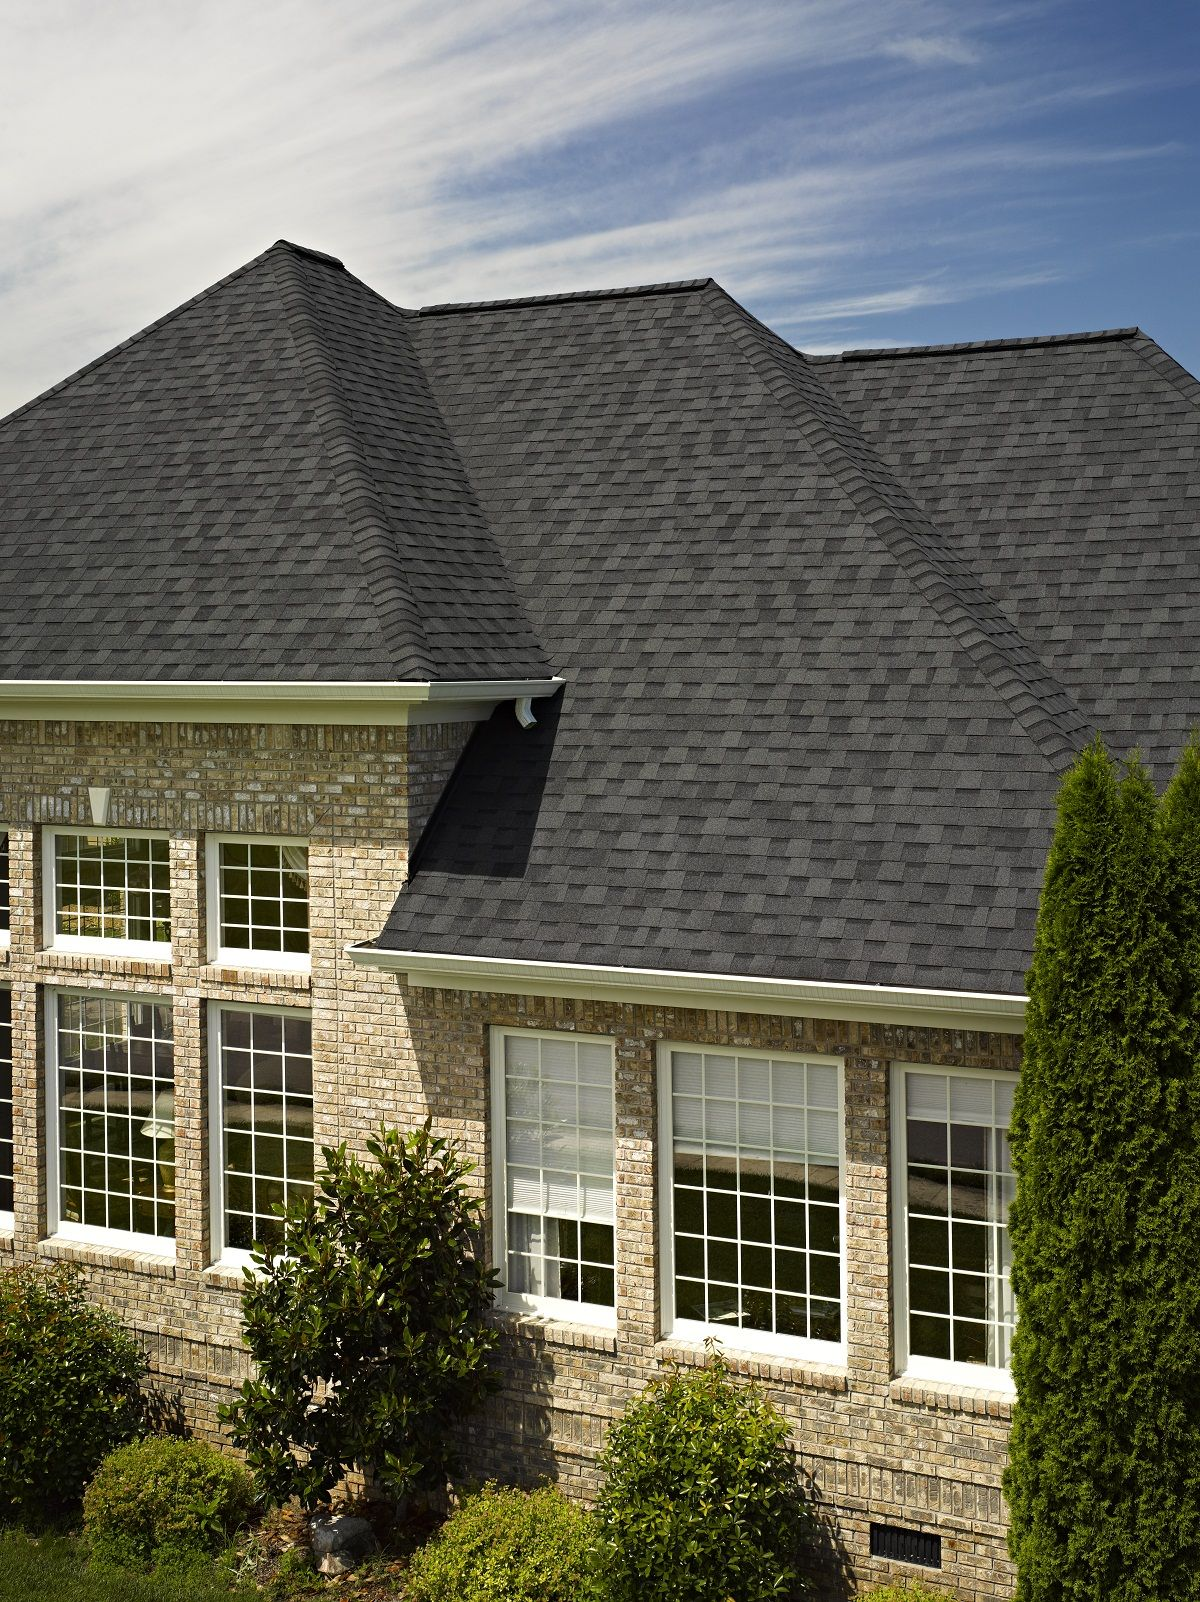 Best Certainteed Landmark Roofing In Moire Black Architectural Shingles Roof Shingle Colors Roof 400 x 300